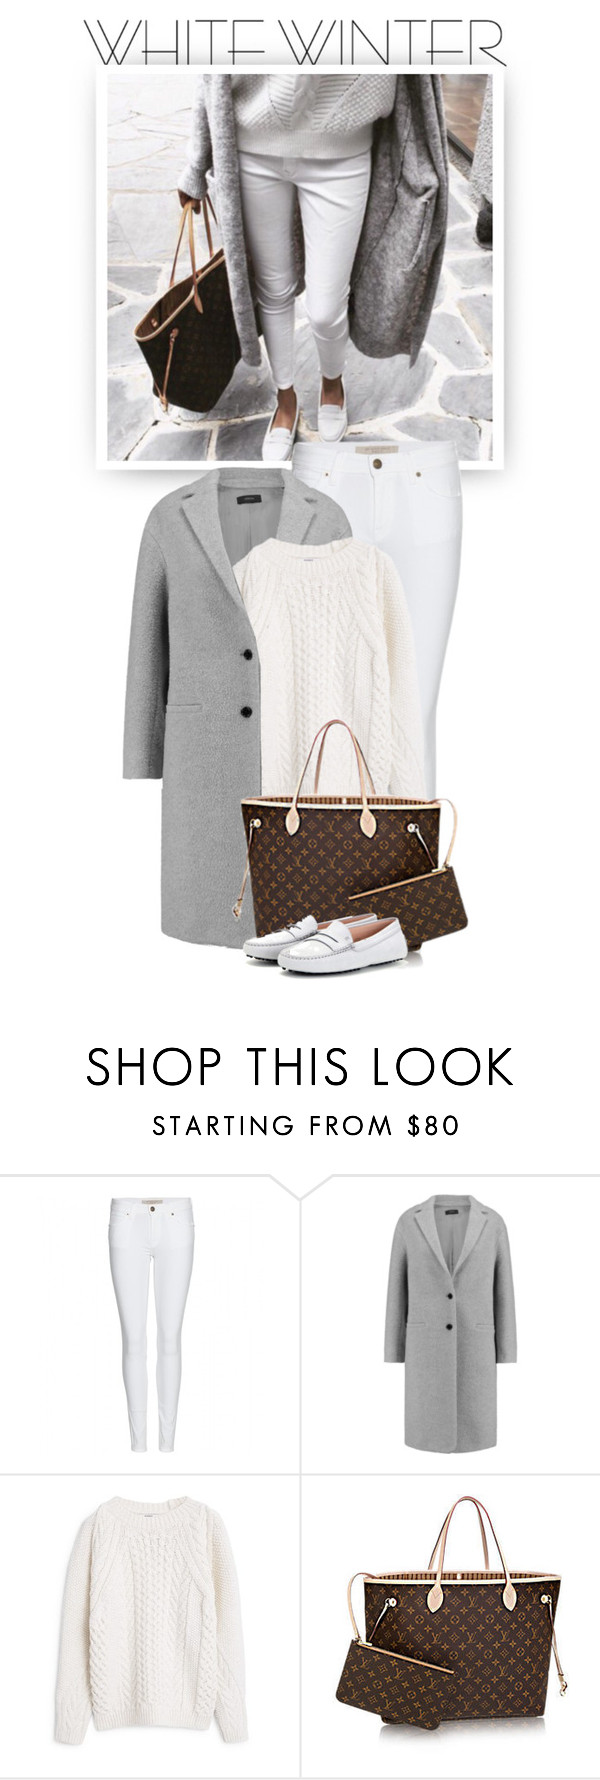 """White Winter Warmth"" by hollowpoint-smile ❤ liked on Polyvore featuring Burberry, Joseph, MANGO, Tod's, women's clothing, women's fashion, women, female, woman and misses"